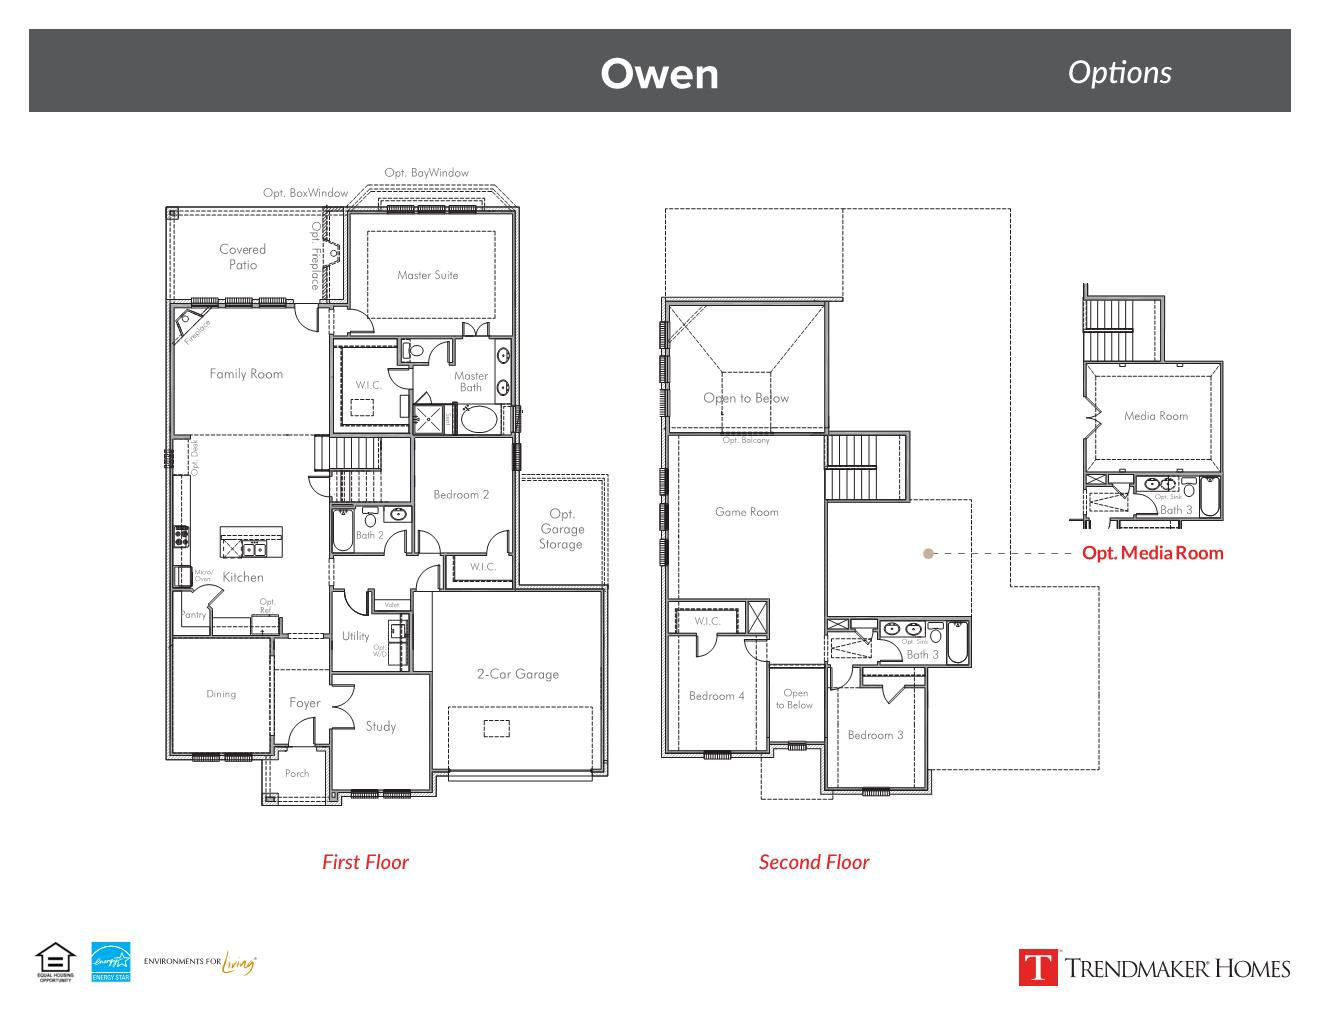 Owen floor plan - Vineyards